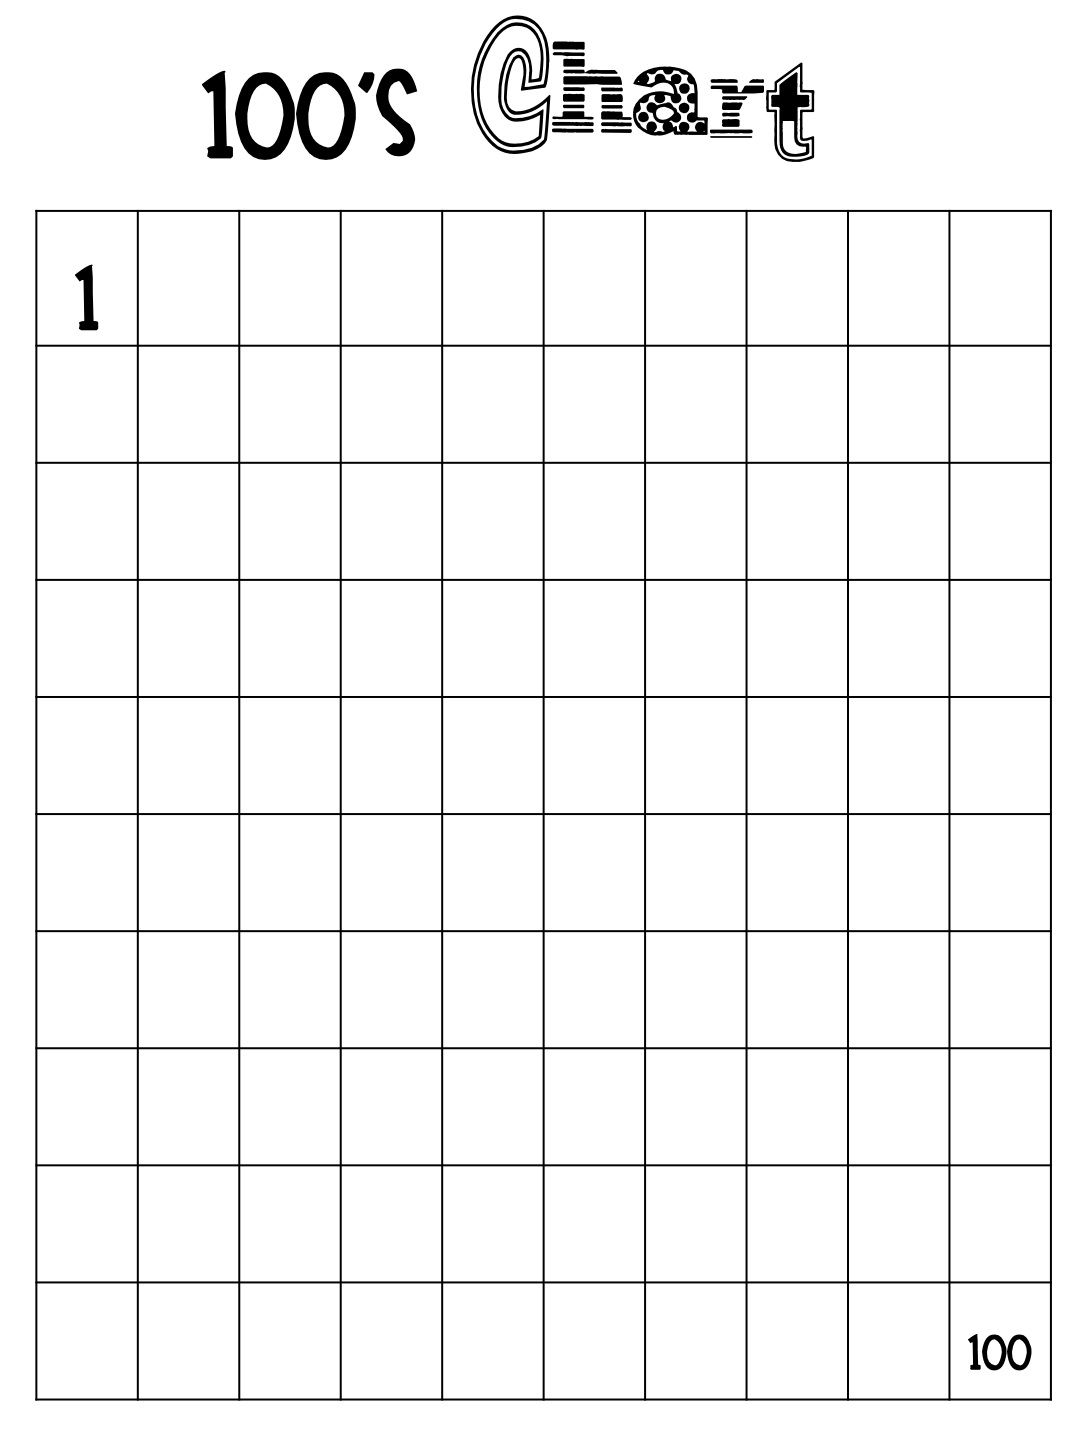 Invaluable image with regard to free printable 100 charts